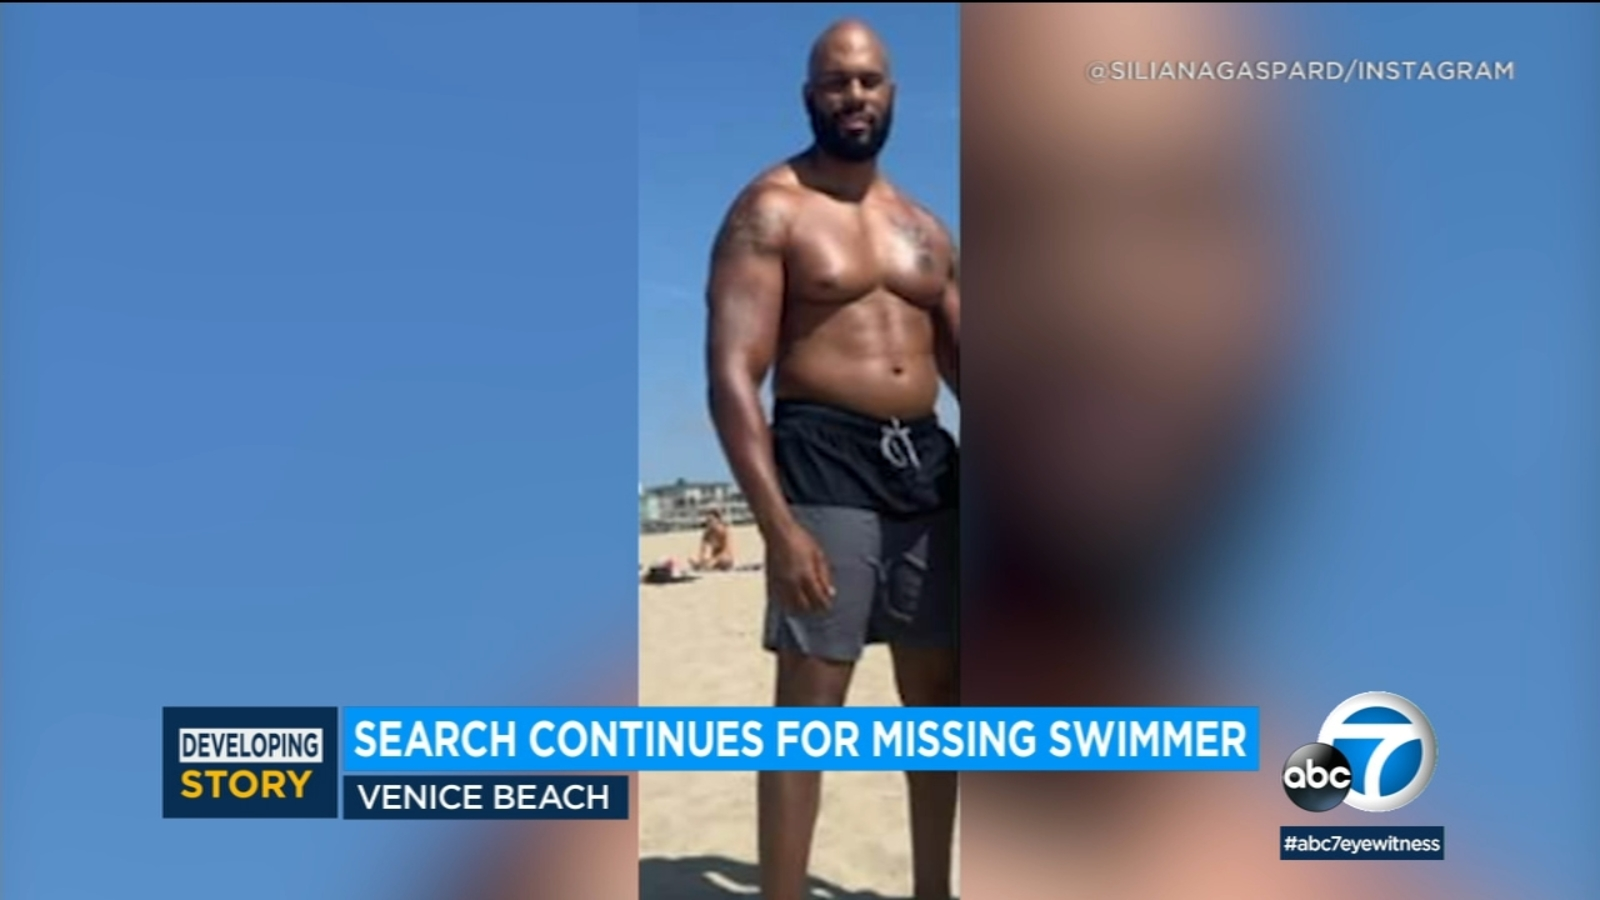 Lifeguards searching for former WWE star Shad Gaspard missing off 1600x900